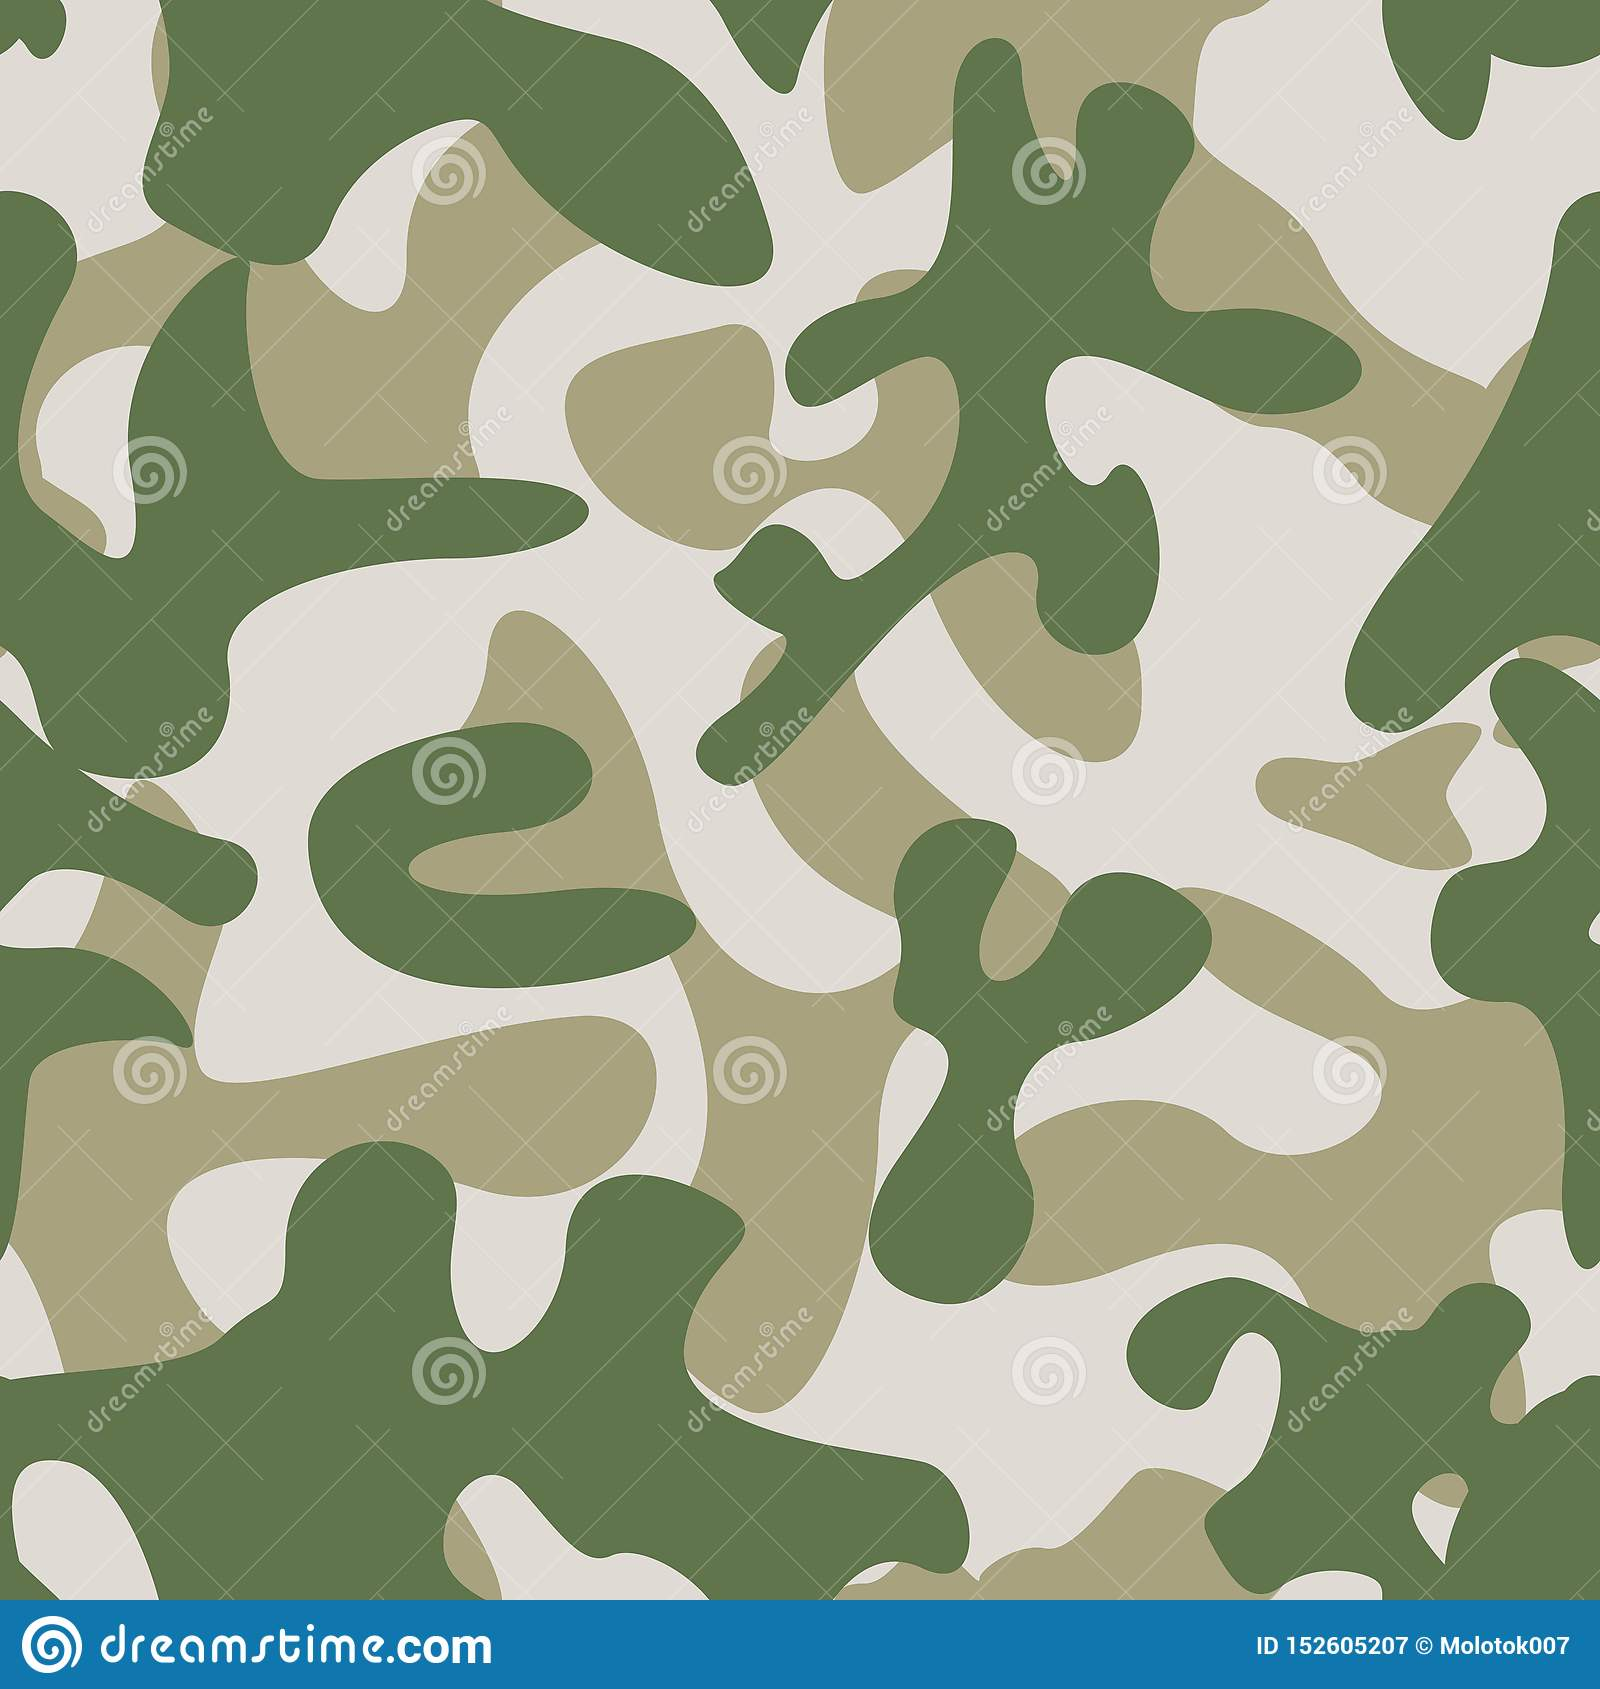 Camouflage Seamless Pattern. Abstract Modern Military Backgound